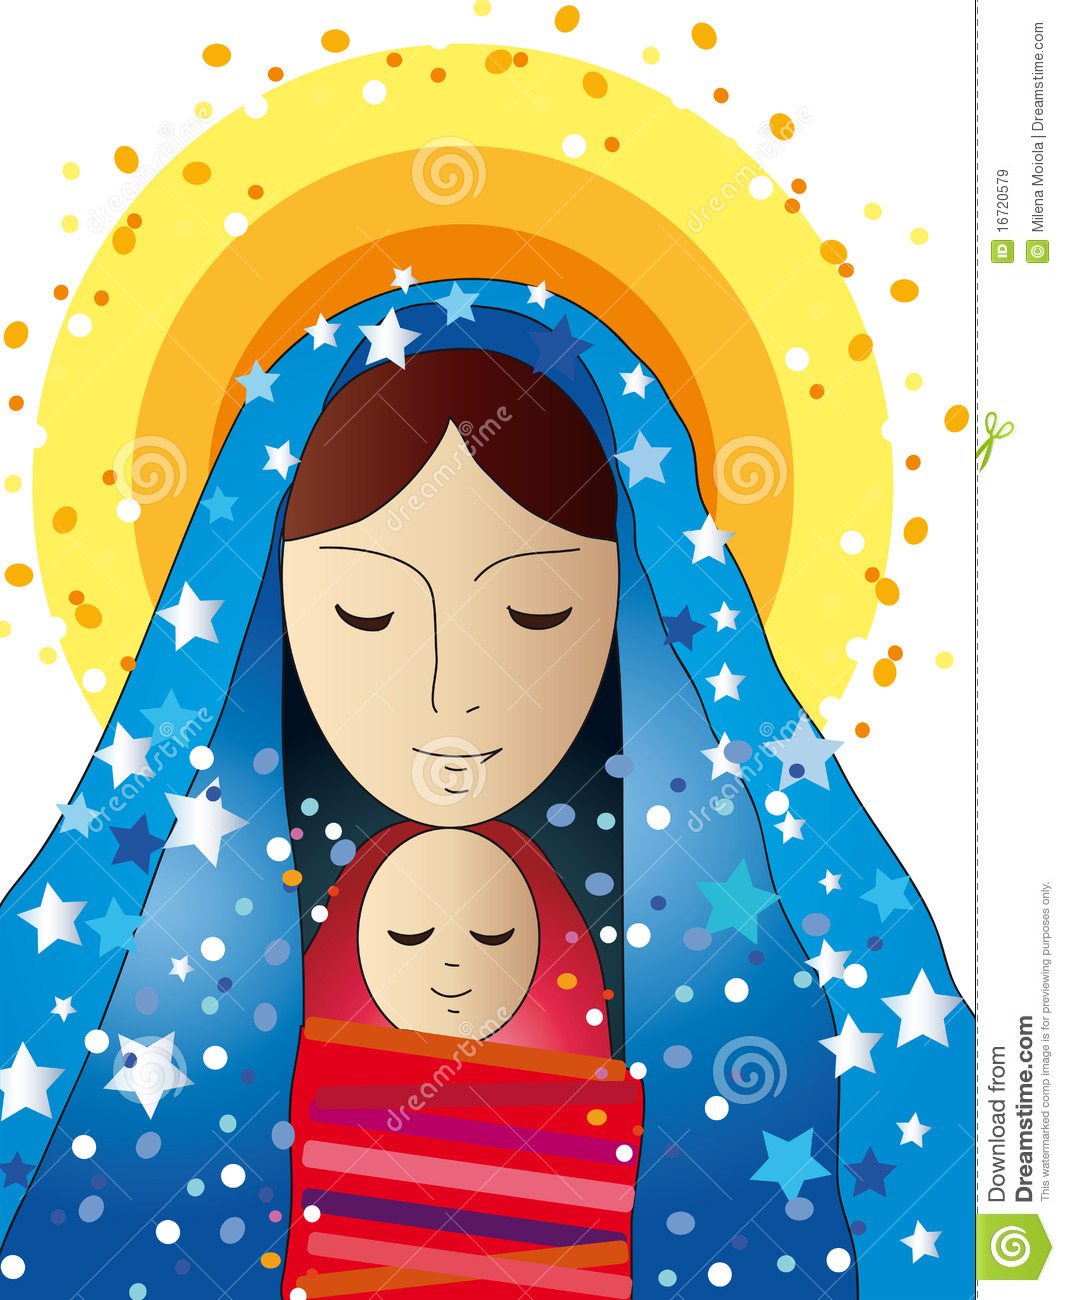 Mary and jesus playing clipart banner stock Mary And Jesus Royalty Free Stock Images - Image: 16720579 banner stock